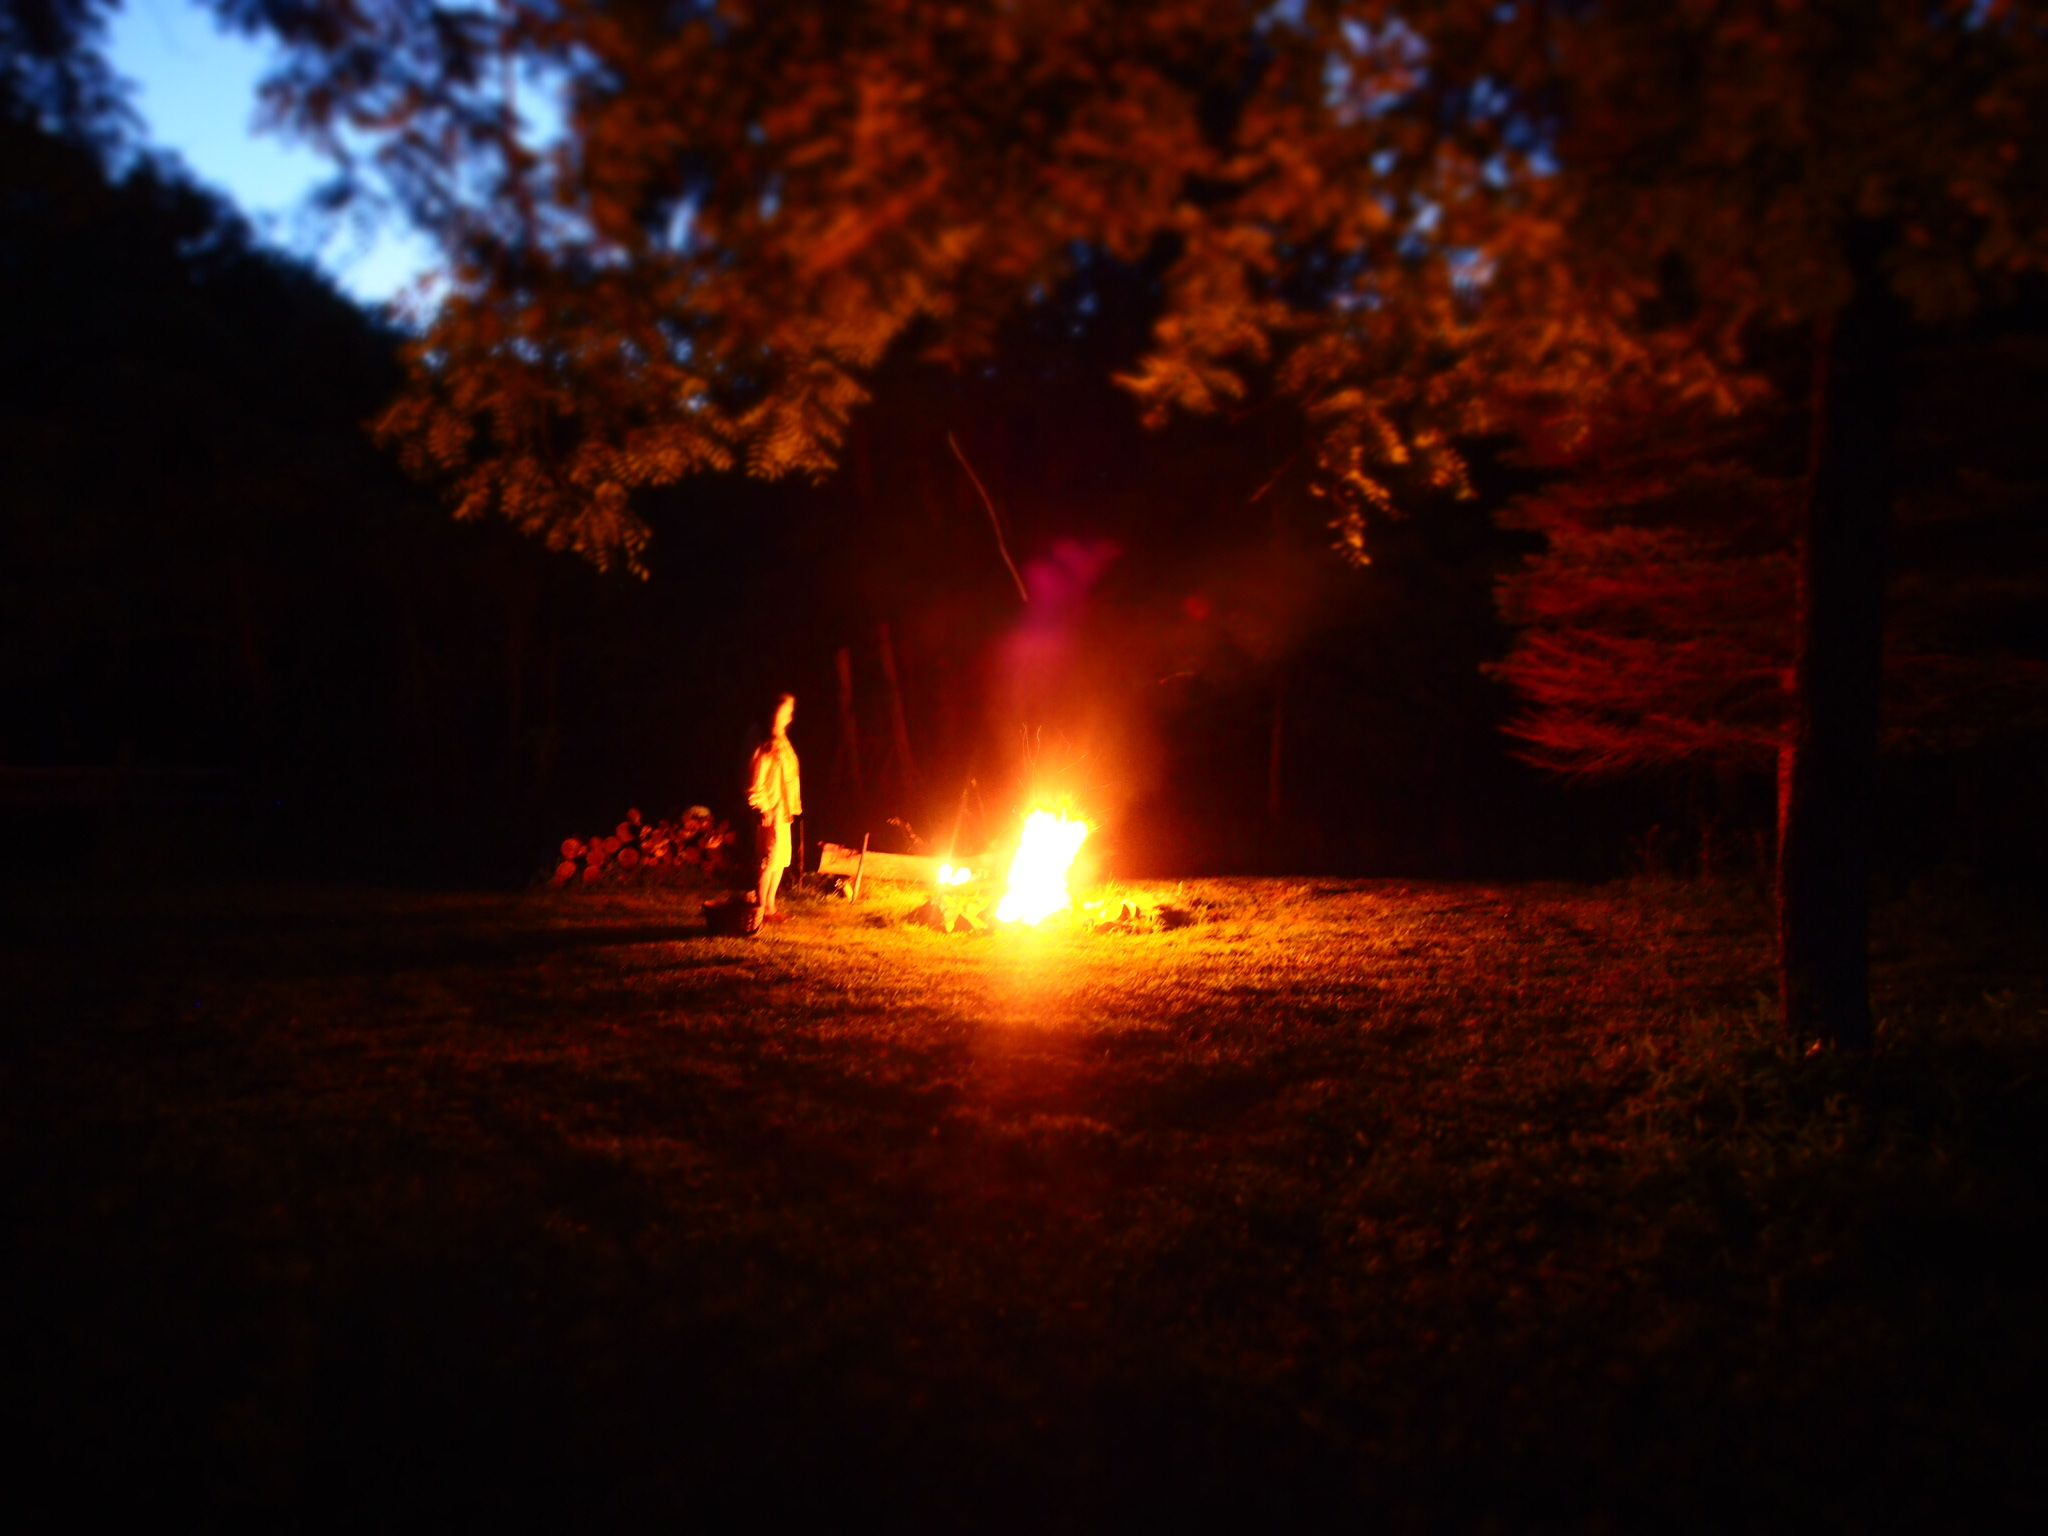 Another Full Moon Fire Ceremony, my mother tending the fire under the great Black Walnut Tree.